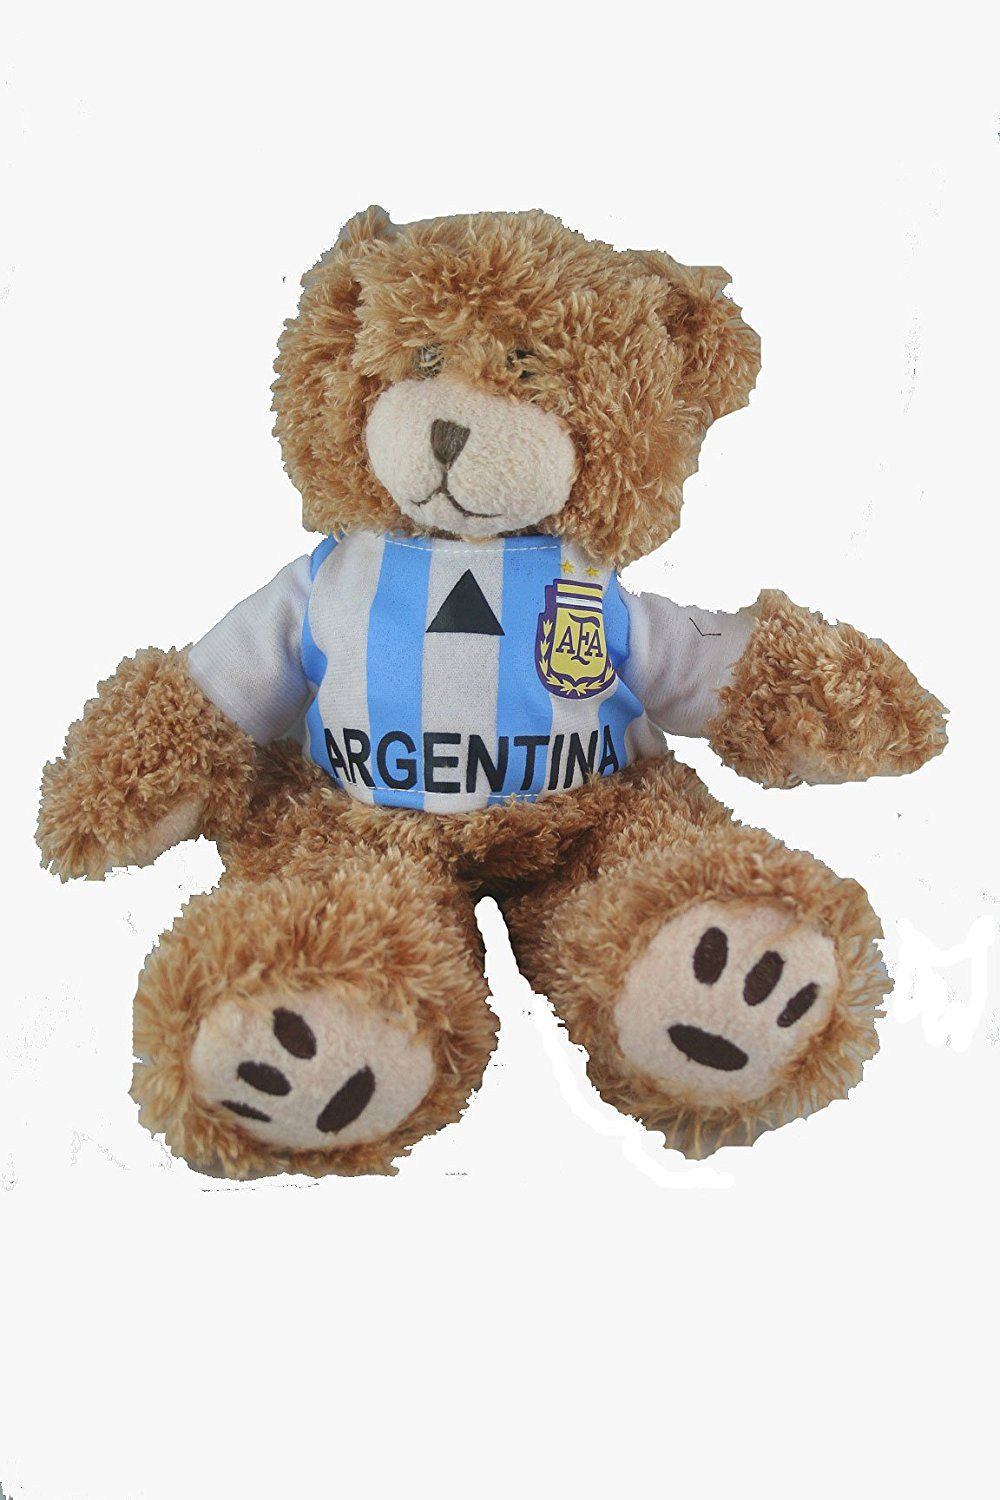 New toys images  Amazon Argentina Fifa Soccer World Cup Small